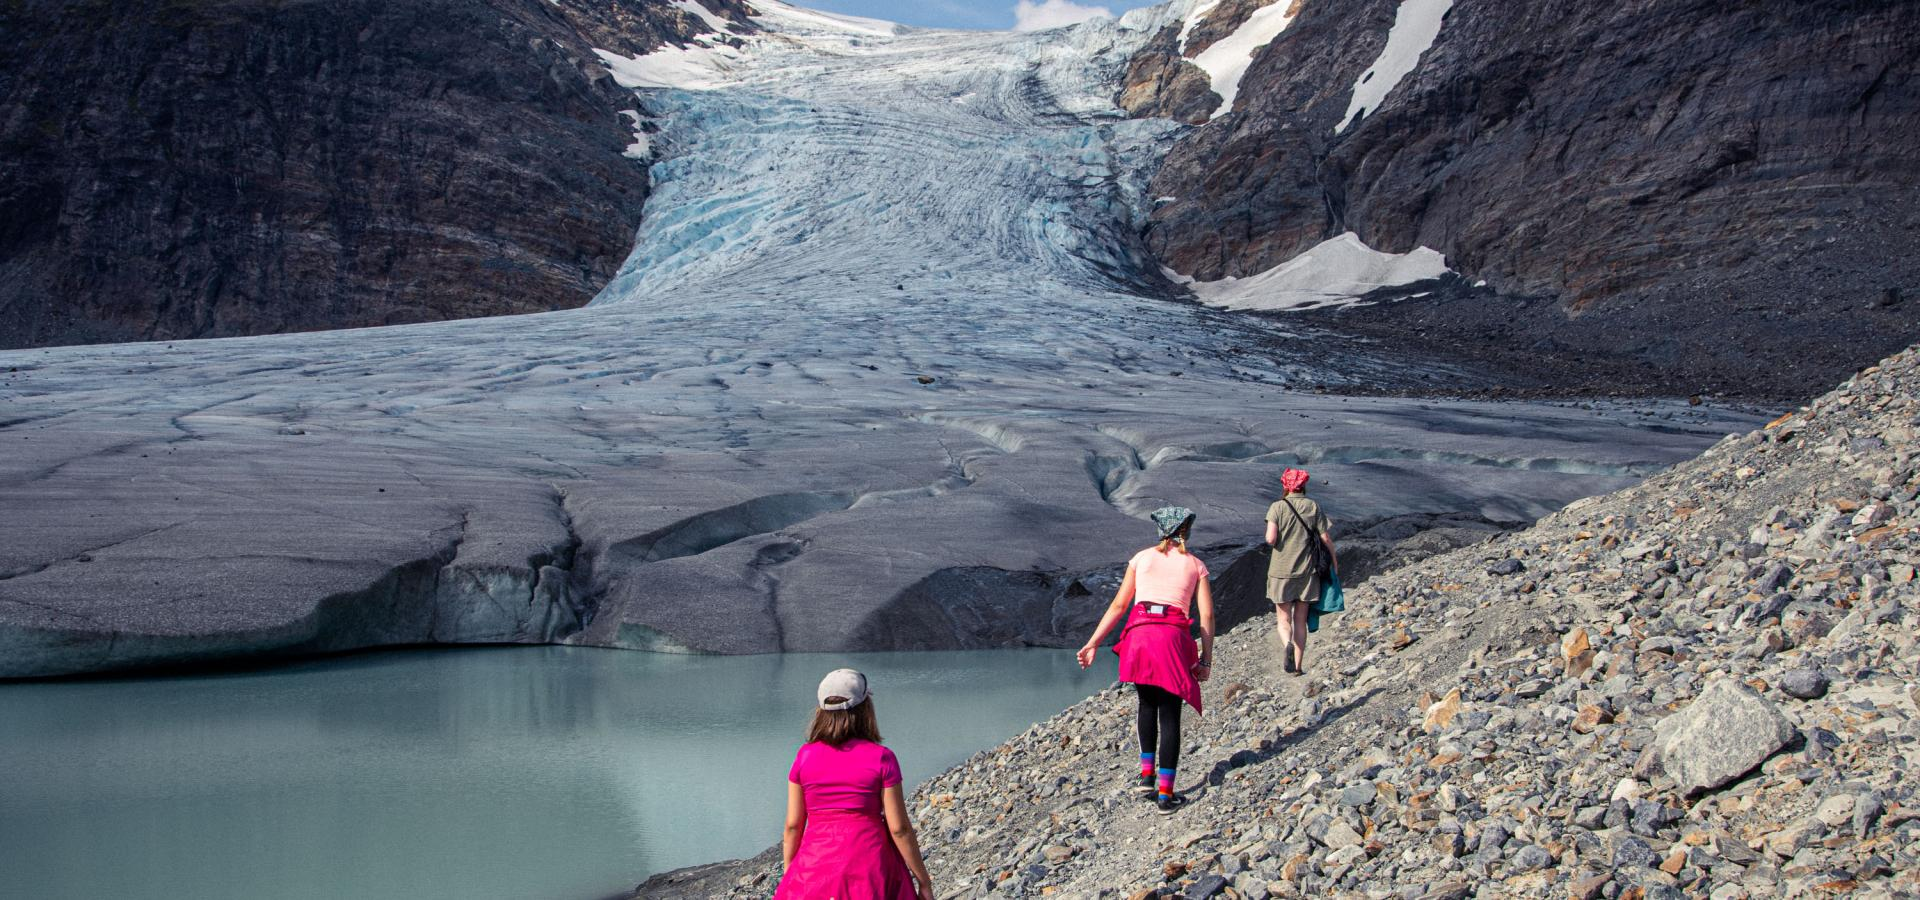 3 persons walking towards the glacier on a rocky ground